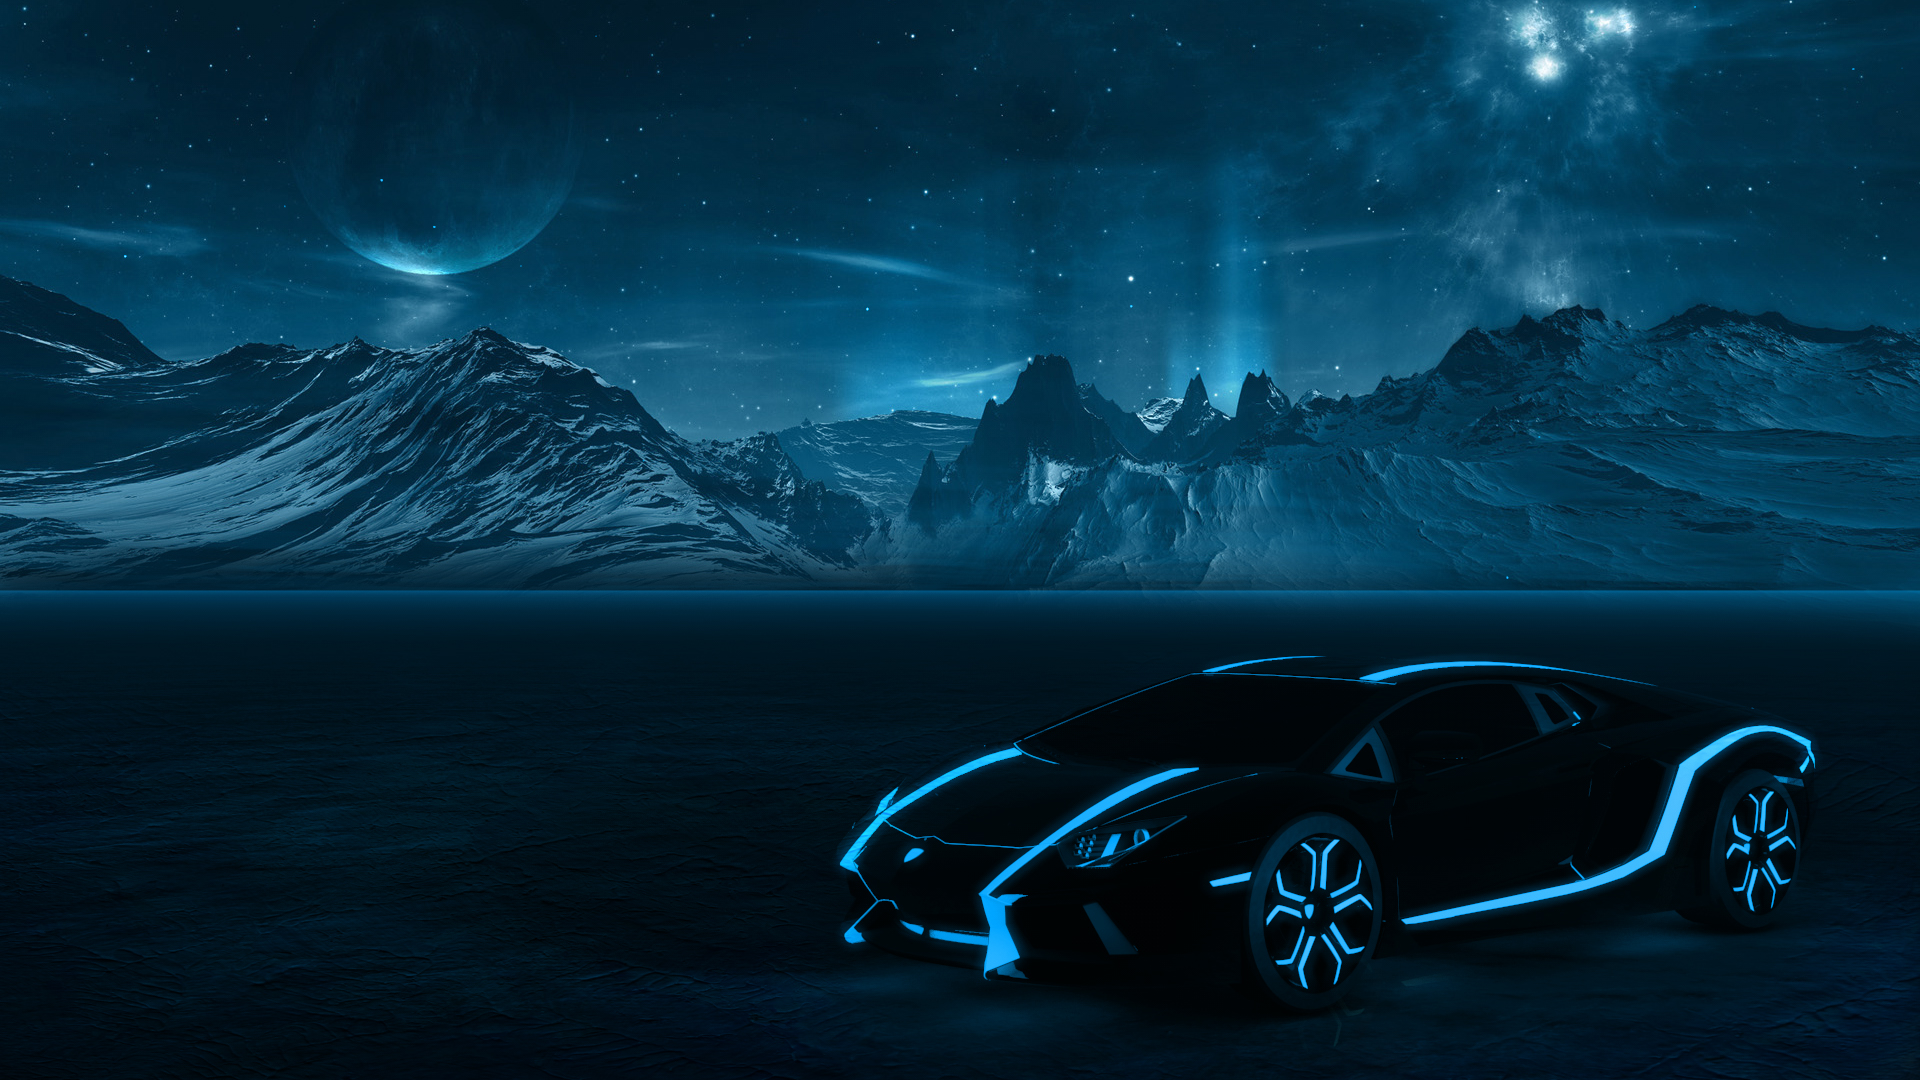 tron wallpaper hd style - photo #8